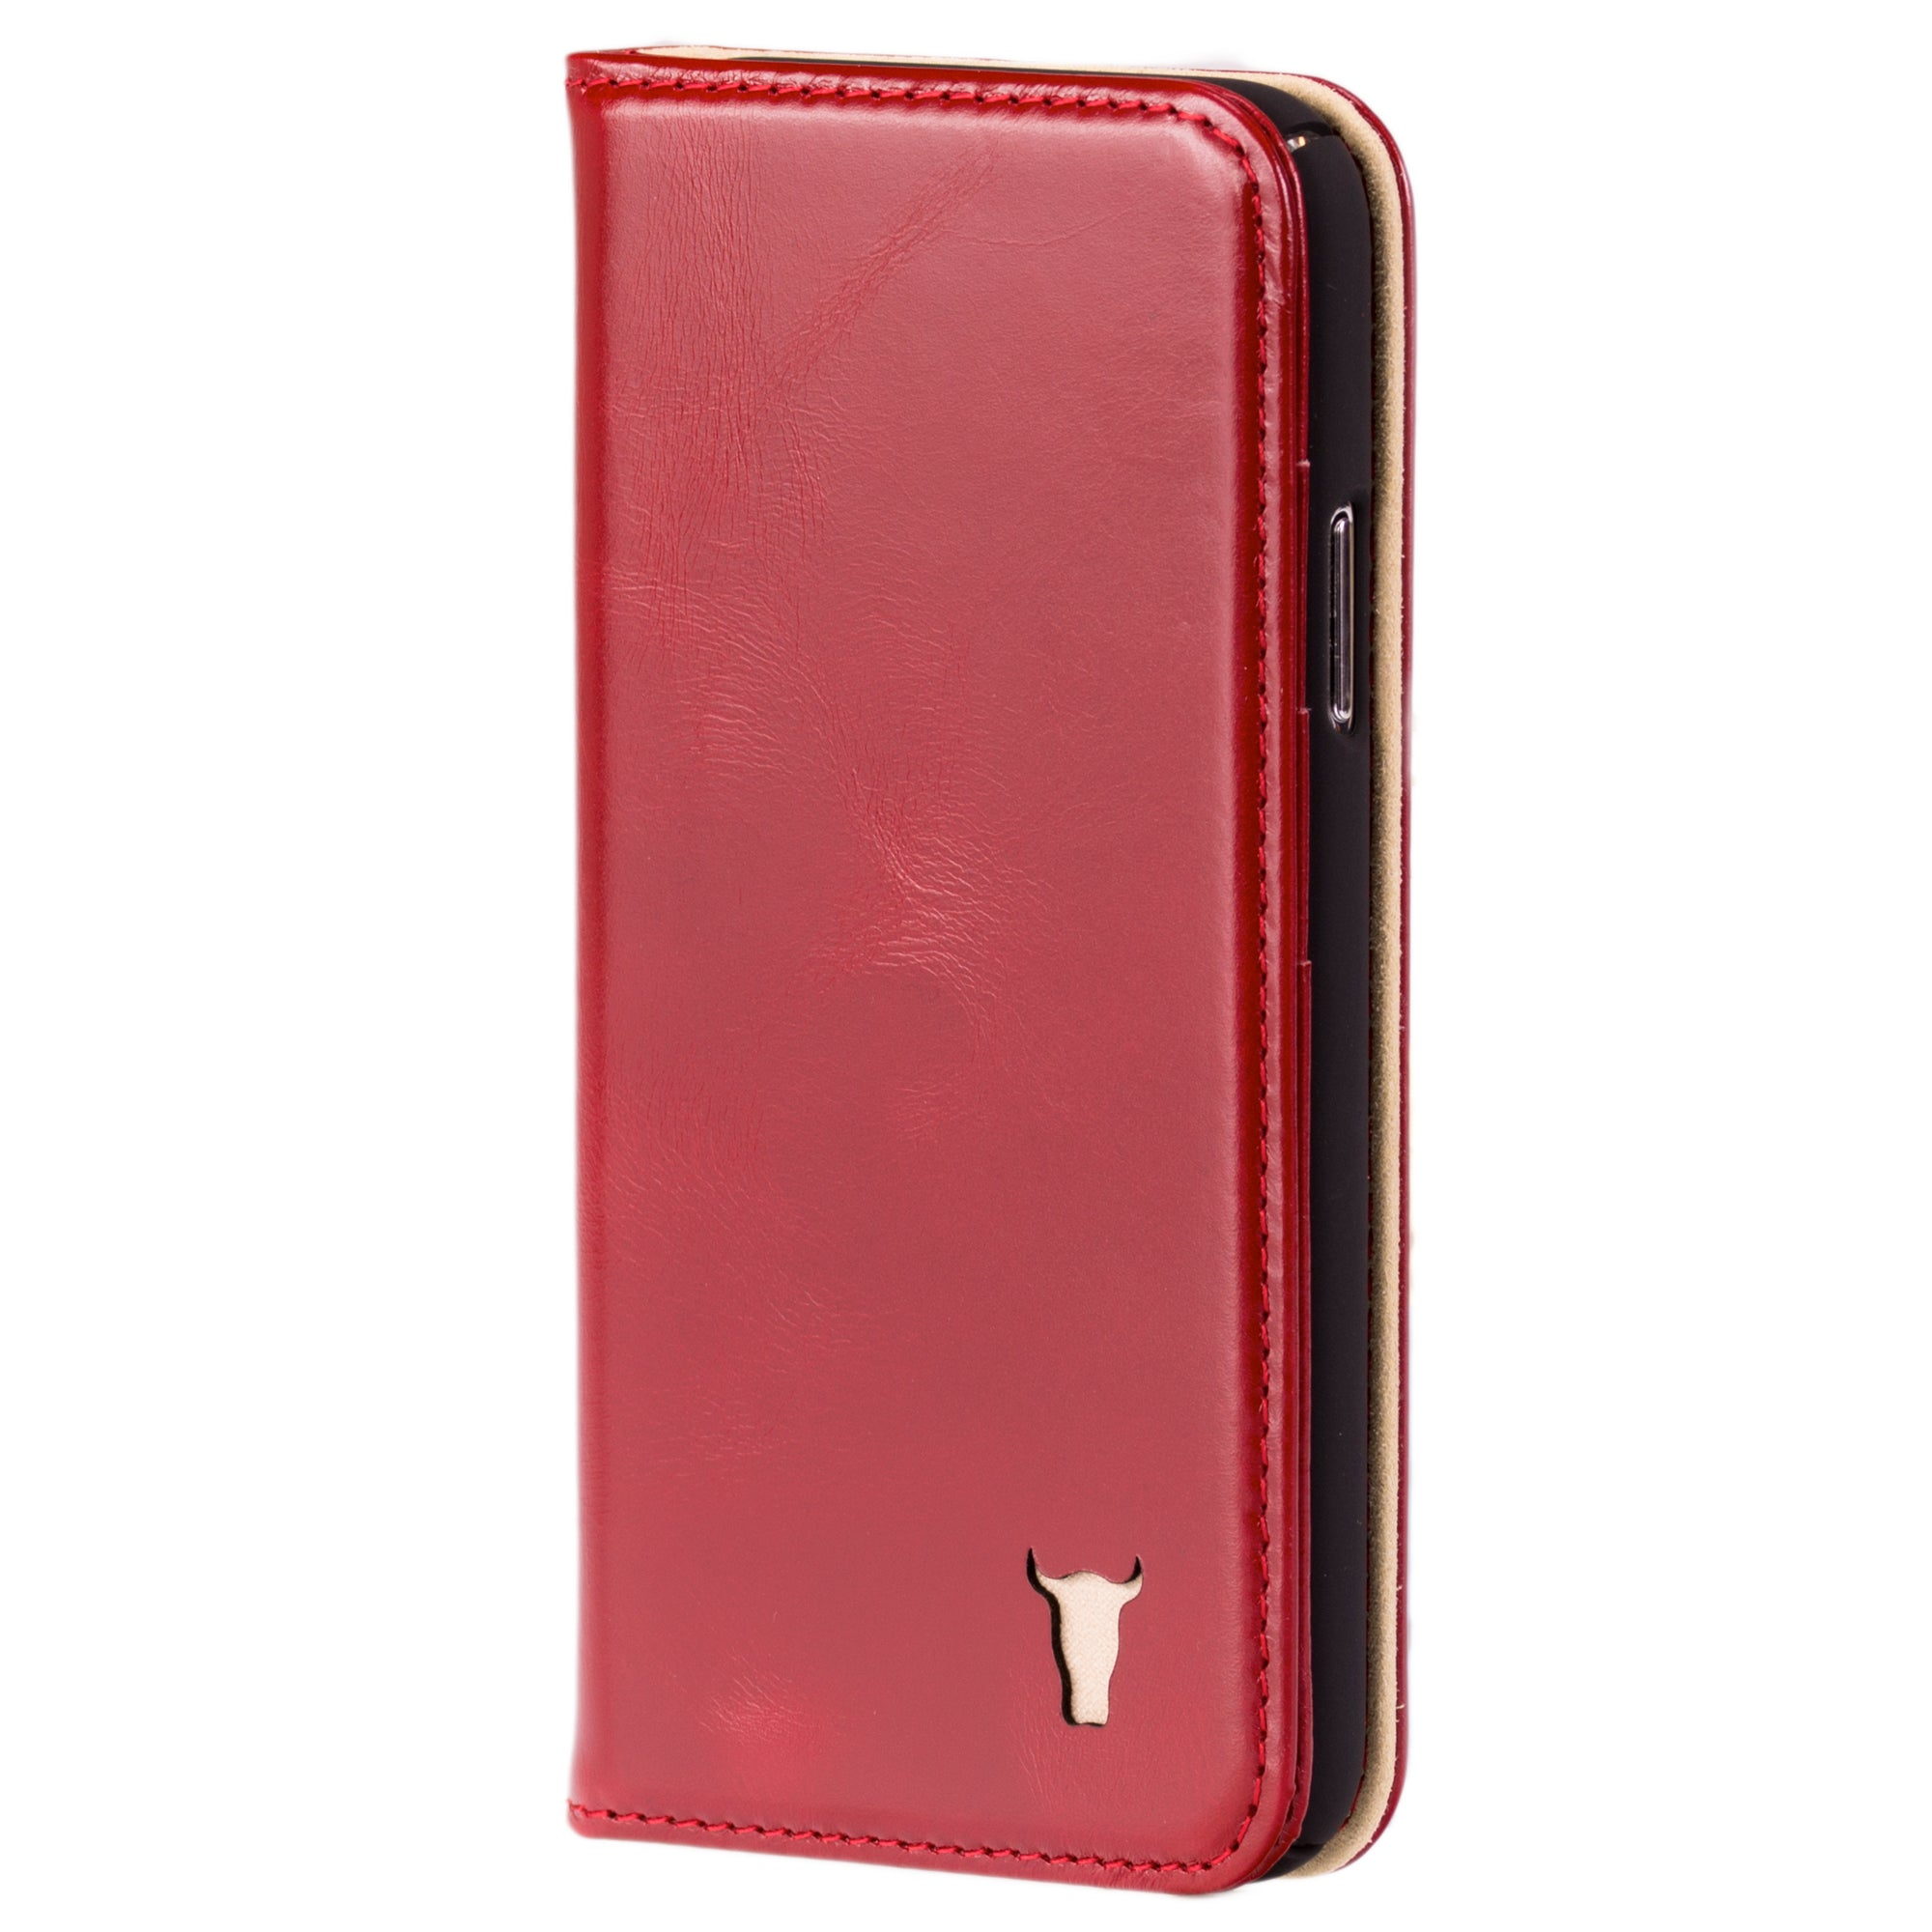 sports shoes 08697 74ff9 iPhone X / iPhone 10 Red Leather Case (cream suede interior), with Stand  Function